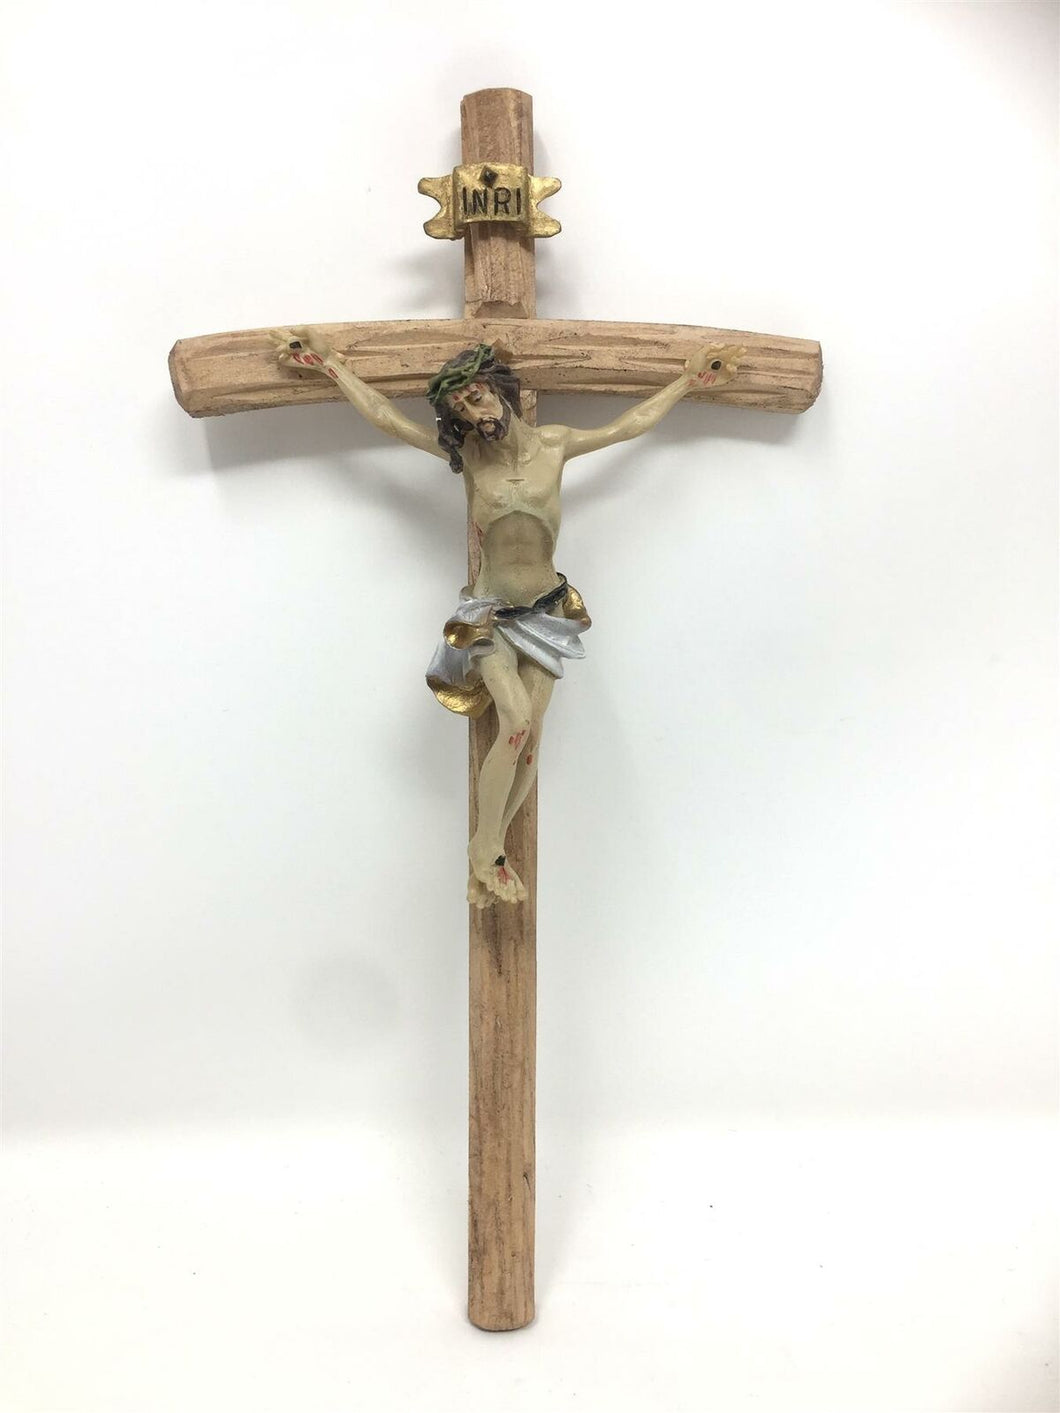 Wooden Crucifix Hanging Cross Jesus Christ Religious Wall Ornament